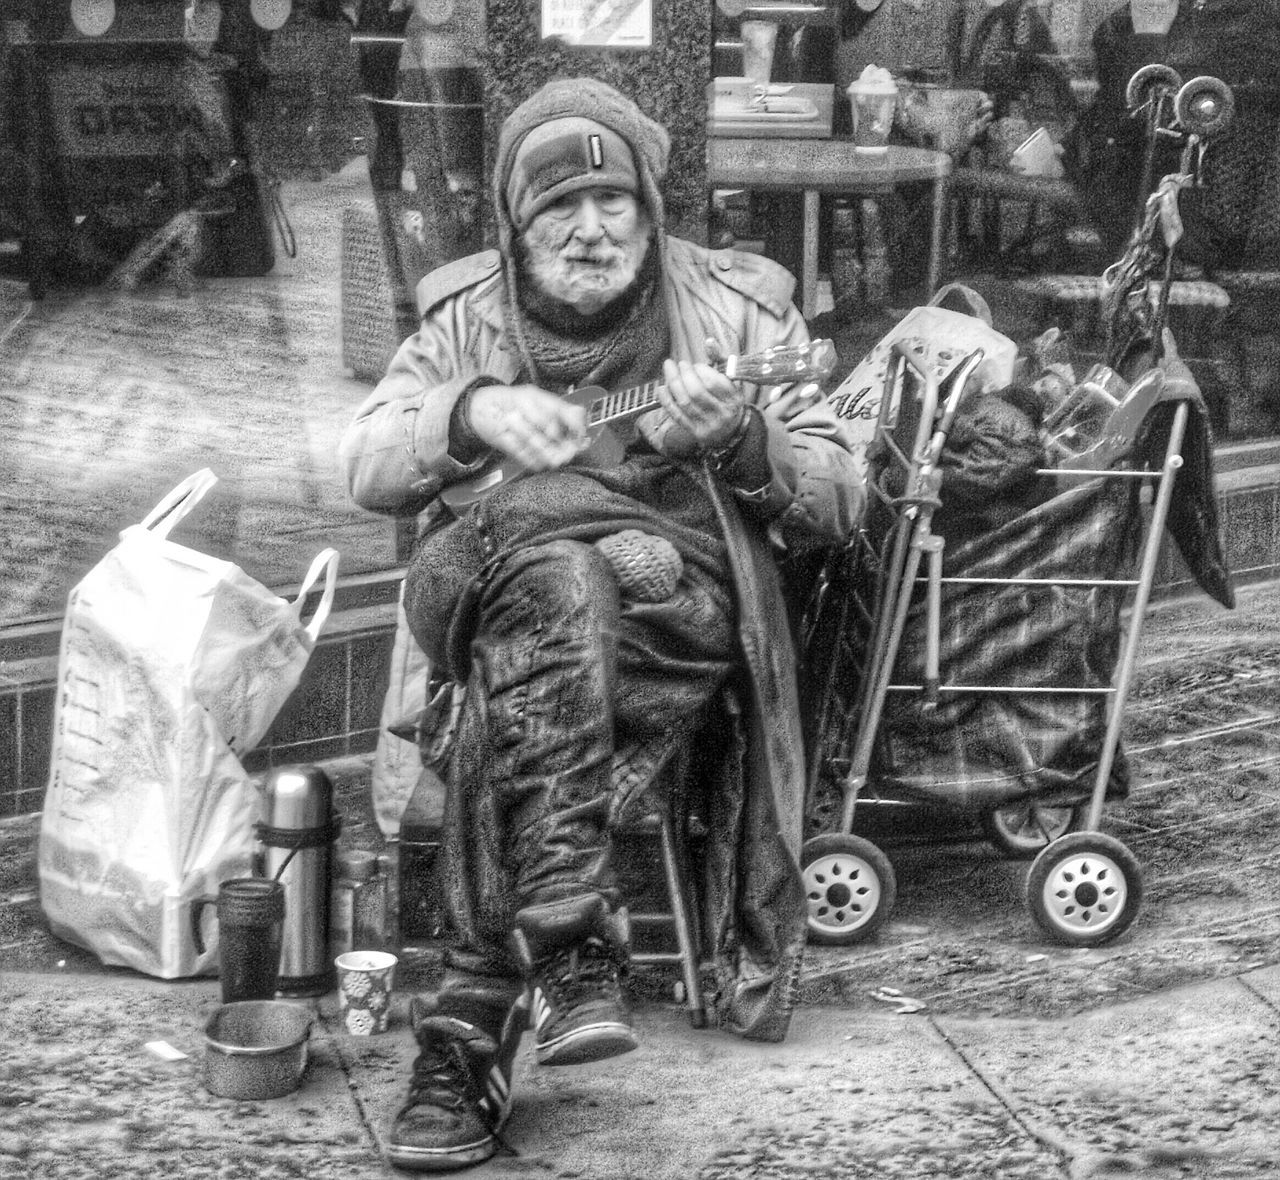 Sometimes we need to remember how lucky we are People Of Manchester People Watching Manchester My Best Photo 2015 Showcase: December Homelessness  No Filter, No Edit, Just Photography The Purist (no Edit, No Filter) Street Photography Street Life Streetlife Homeless Black And White Collection  Streetphotography EyeEm Masterclass Eyeem Black And White For The Love Of Black And White Blackandwhite EyeEm Best Shots - Black + White Black And White Photography B&w Street Photography My Favorite Photo Street Photography - EyeEm Awards 2016 Homeless Of Manchester Uk Photojournalist Eyeem 2016